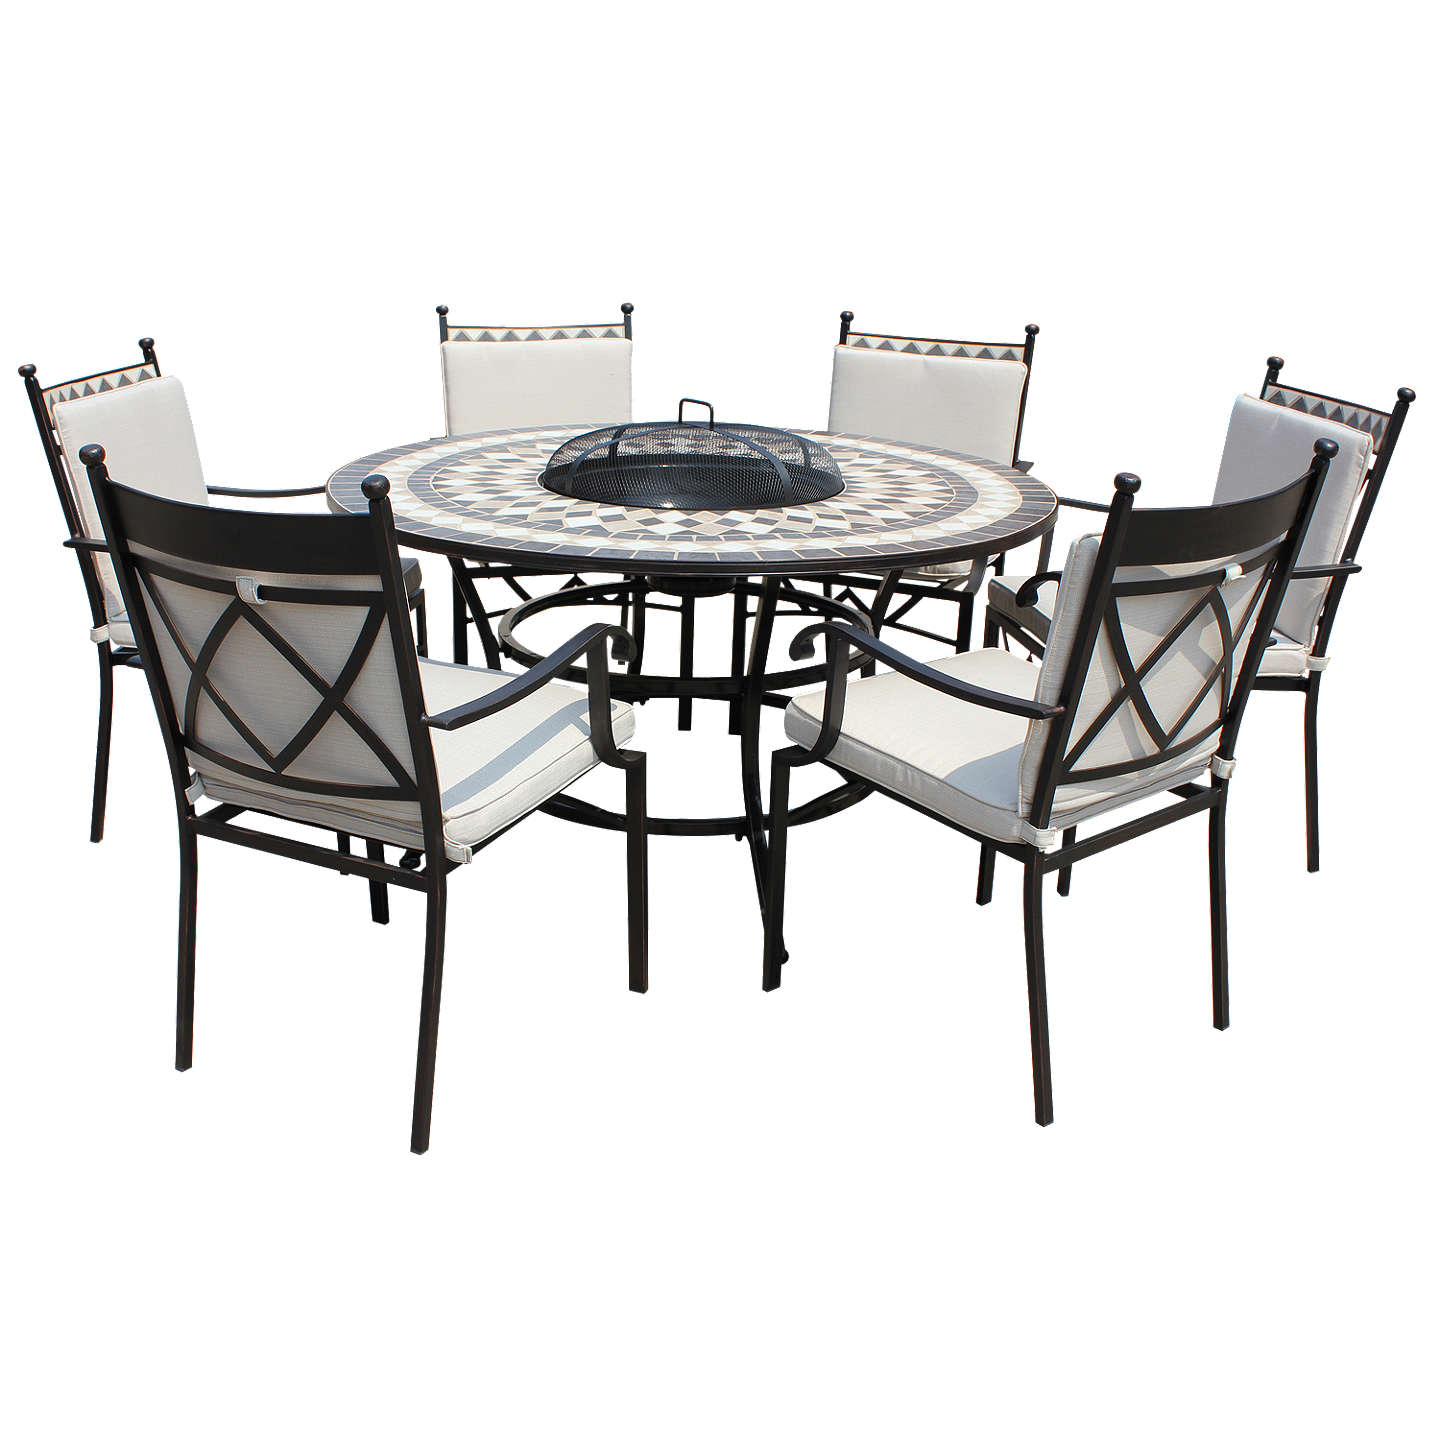 6 Seater Round Dining Table: LG Outdoor Casablanca 6 Seater Garden Round Table Dining